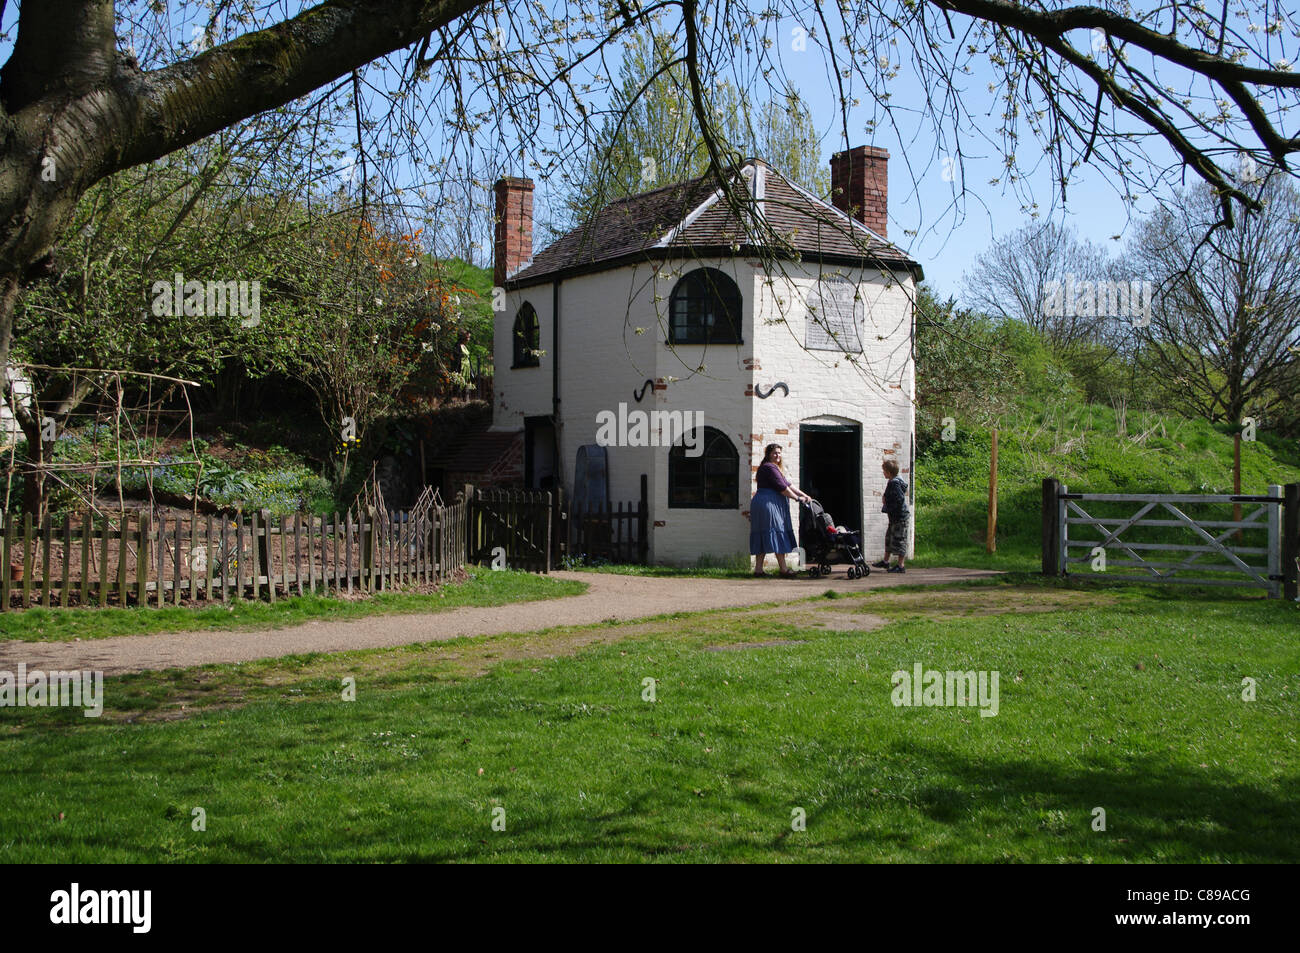 Toll House, Avoncroft Museum of Buildings, Bromsgrove, Worcestershire - Stock Image